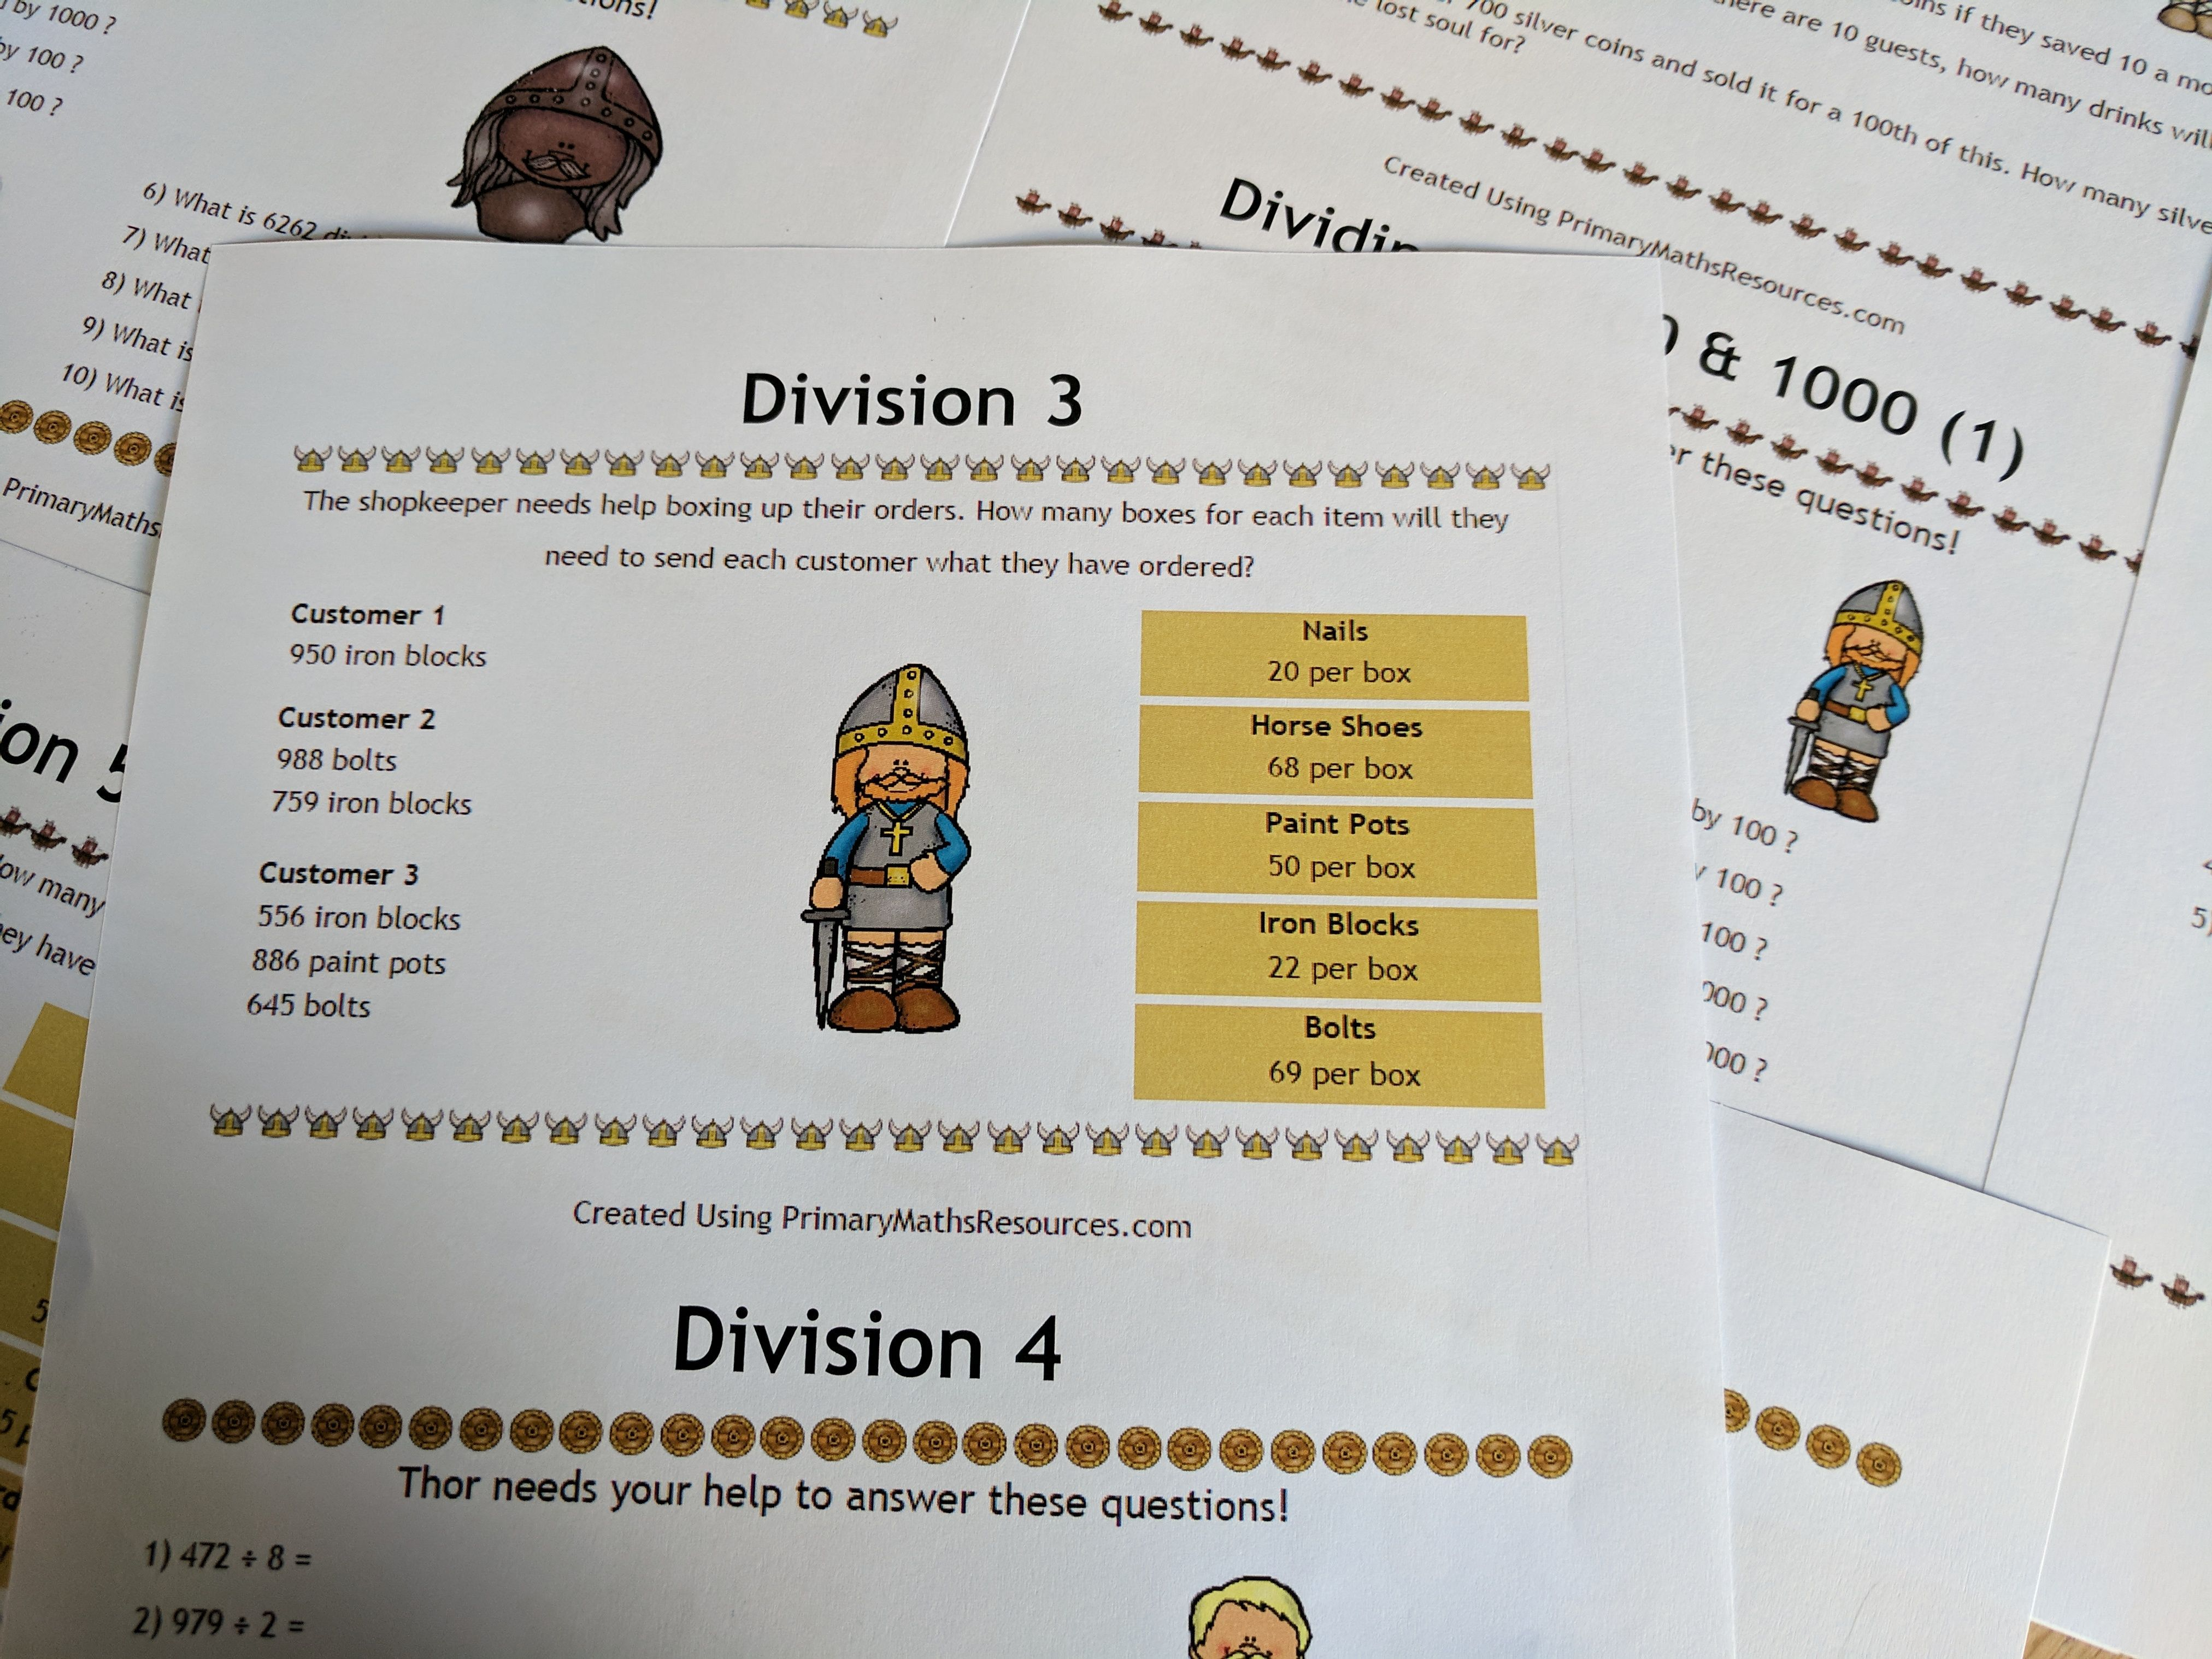 Fun Viking Themed Division Problems For 4th Grade Classes